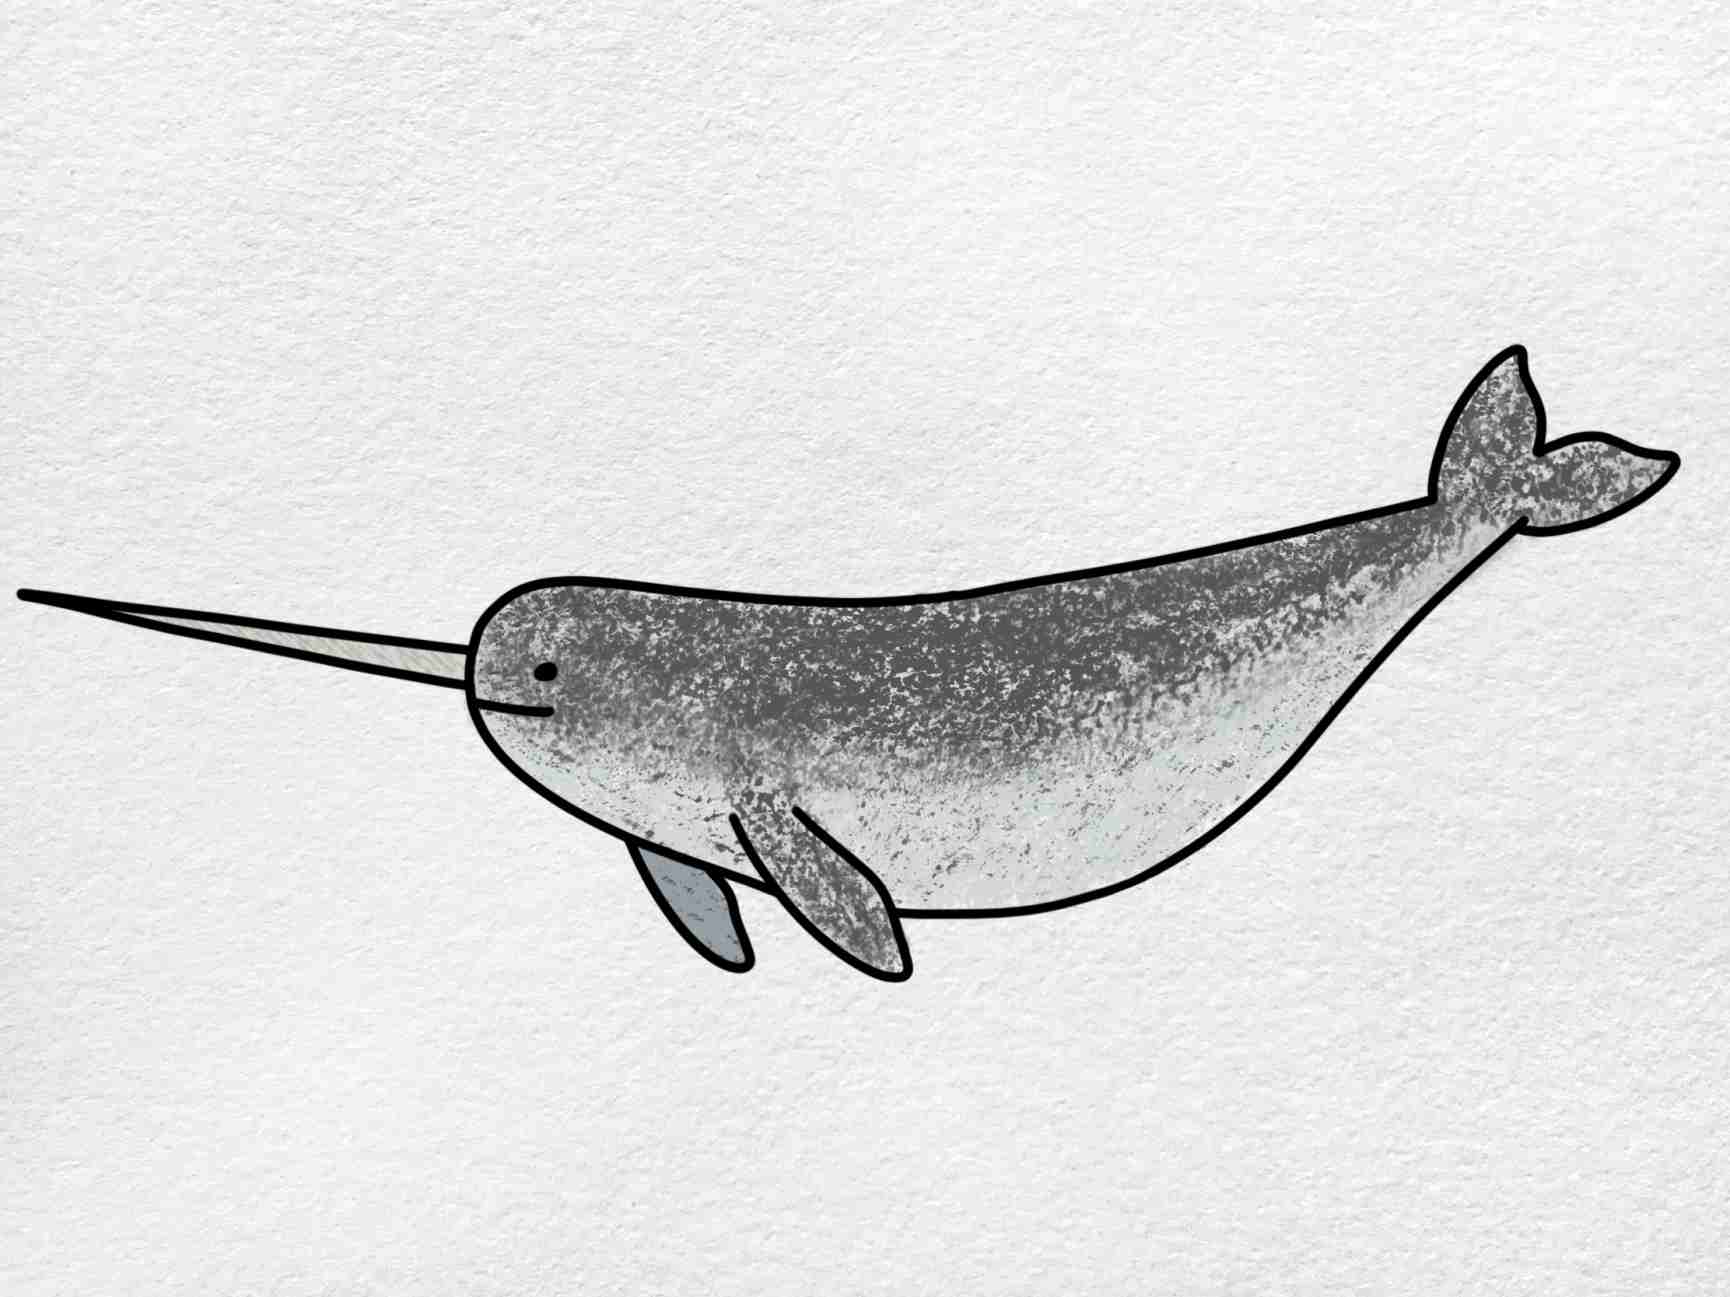 Narwhal Drawing: Step 6